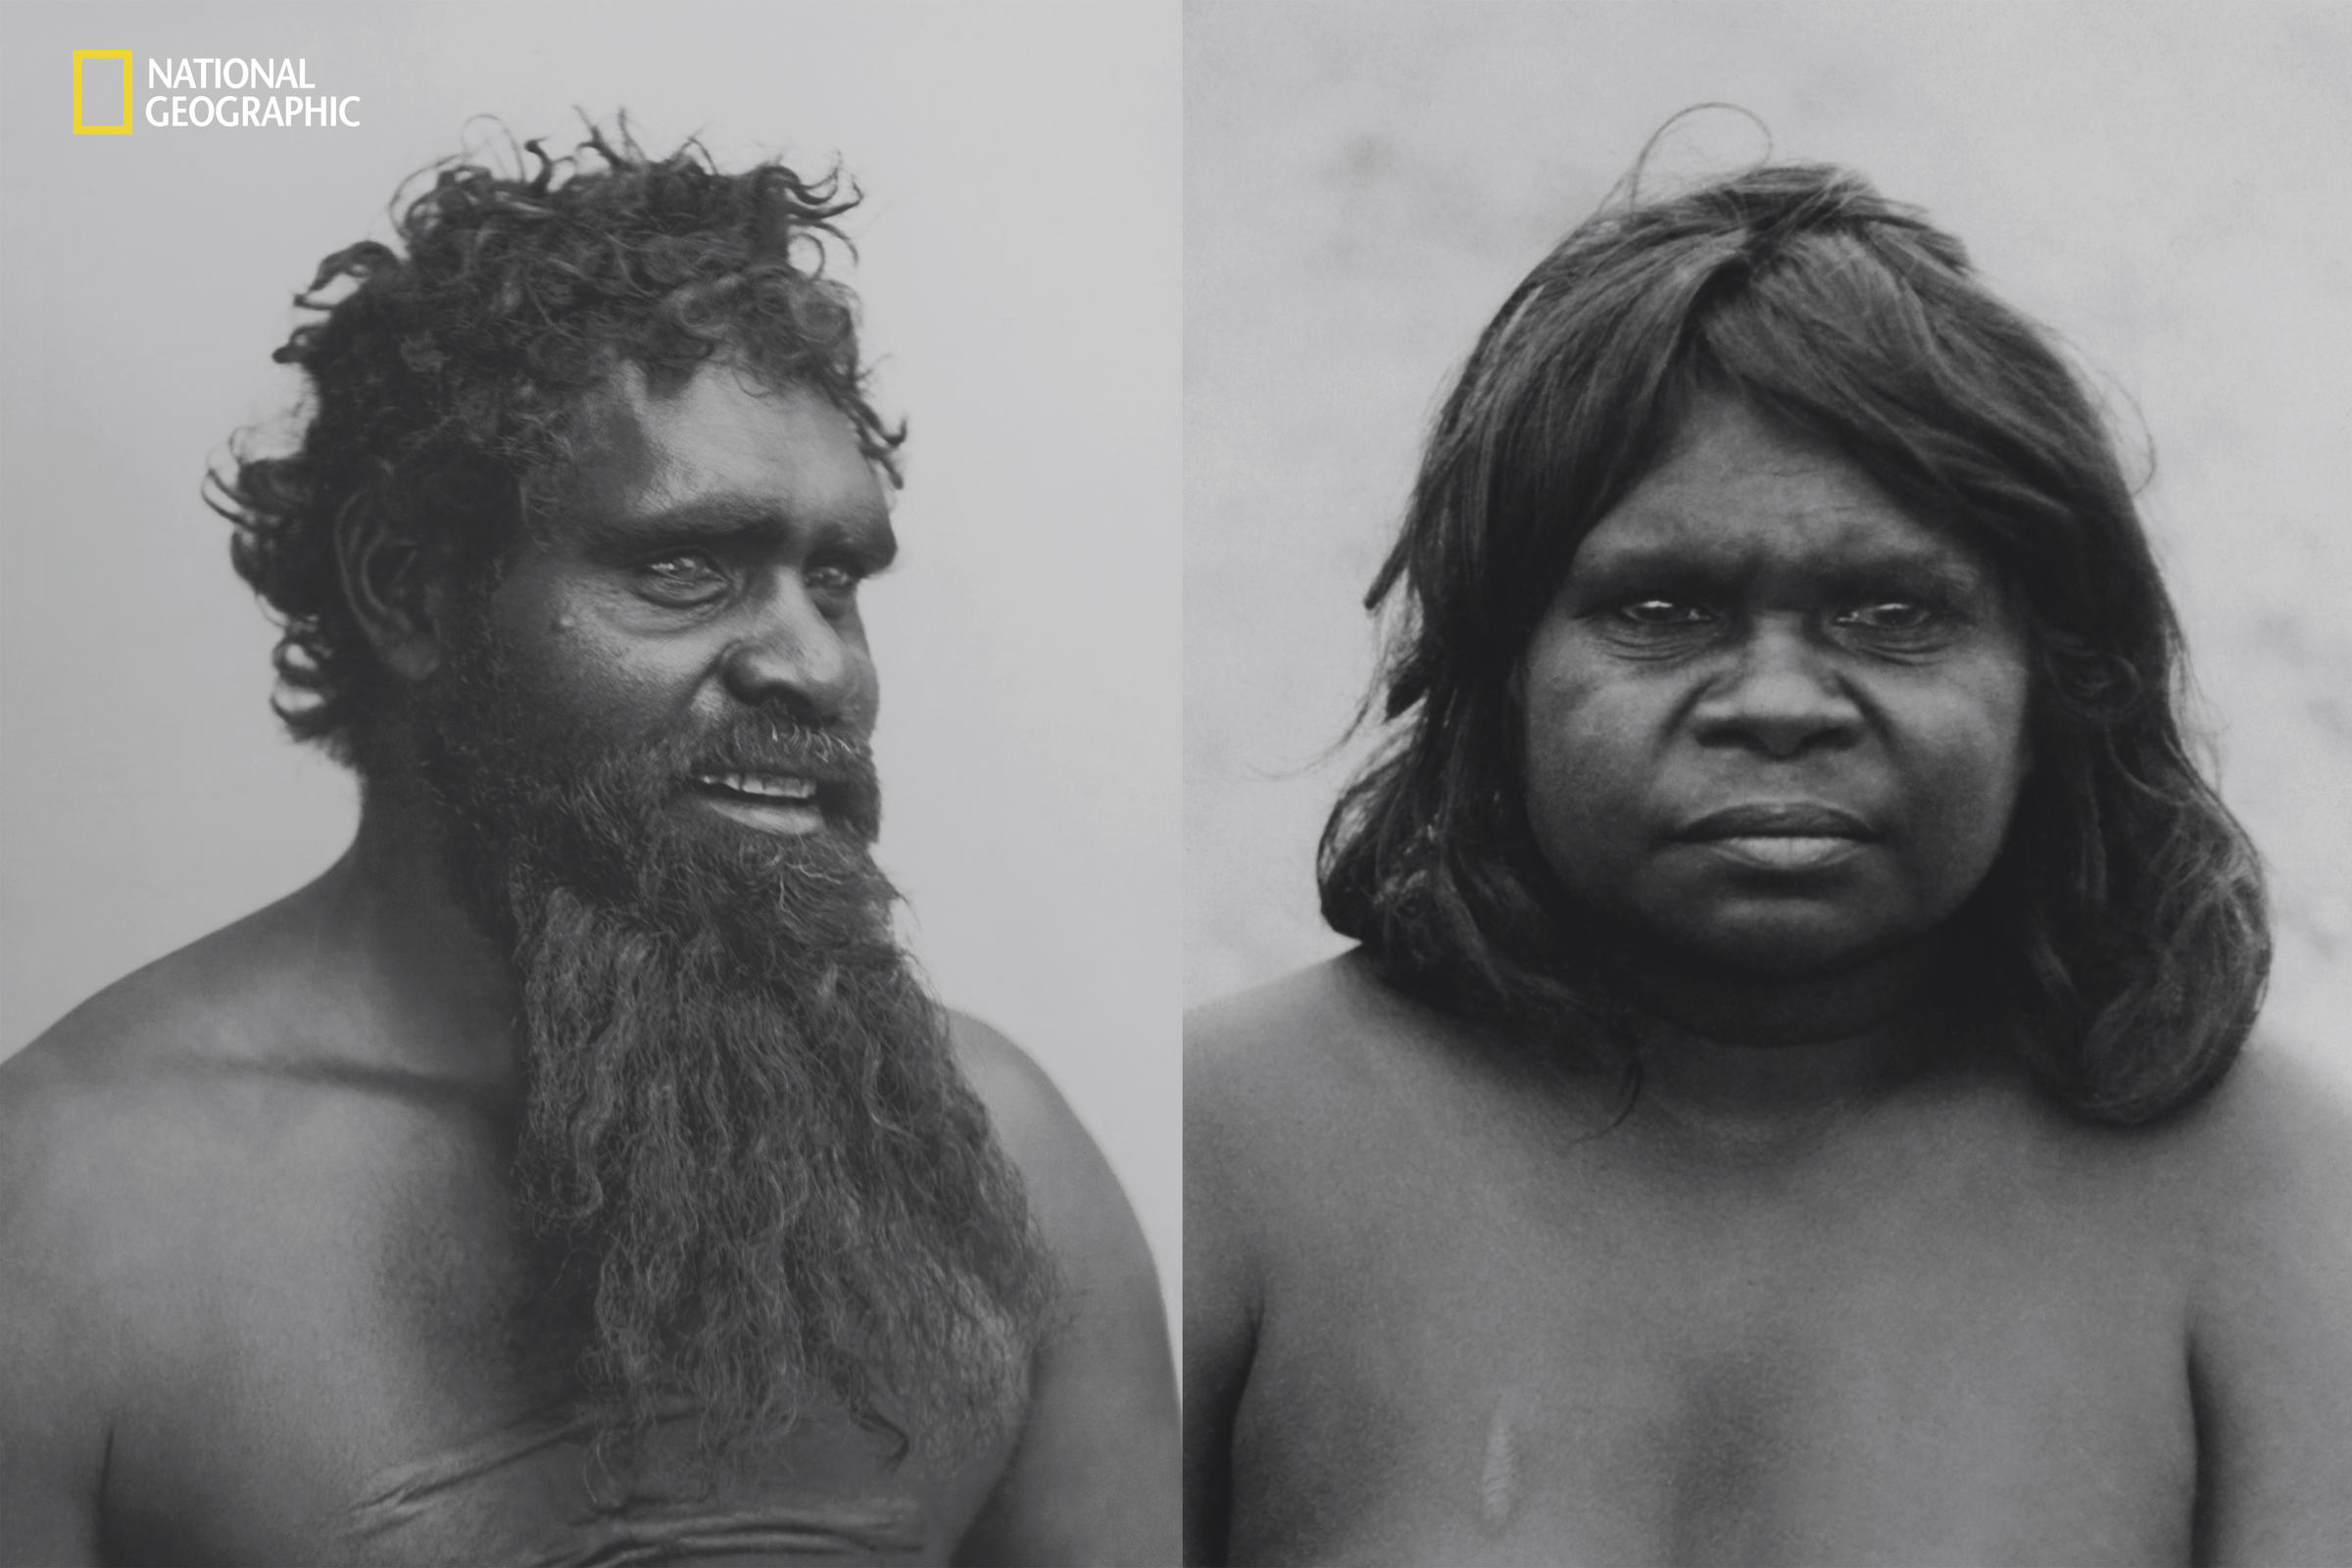 In a full-issue article on Australia that ran in National Geographic in 1916 aboriginal Australians were called